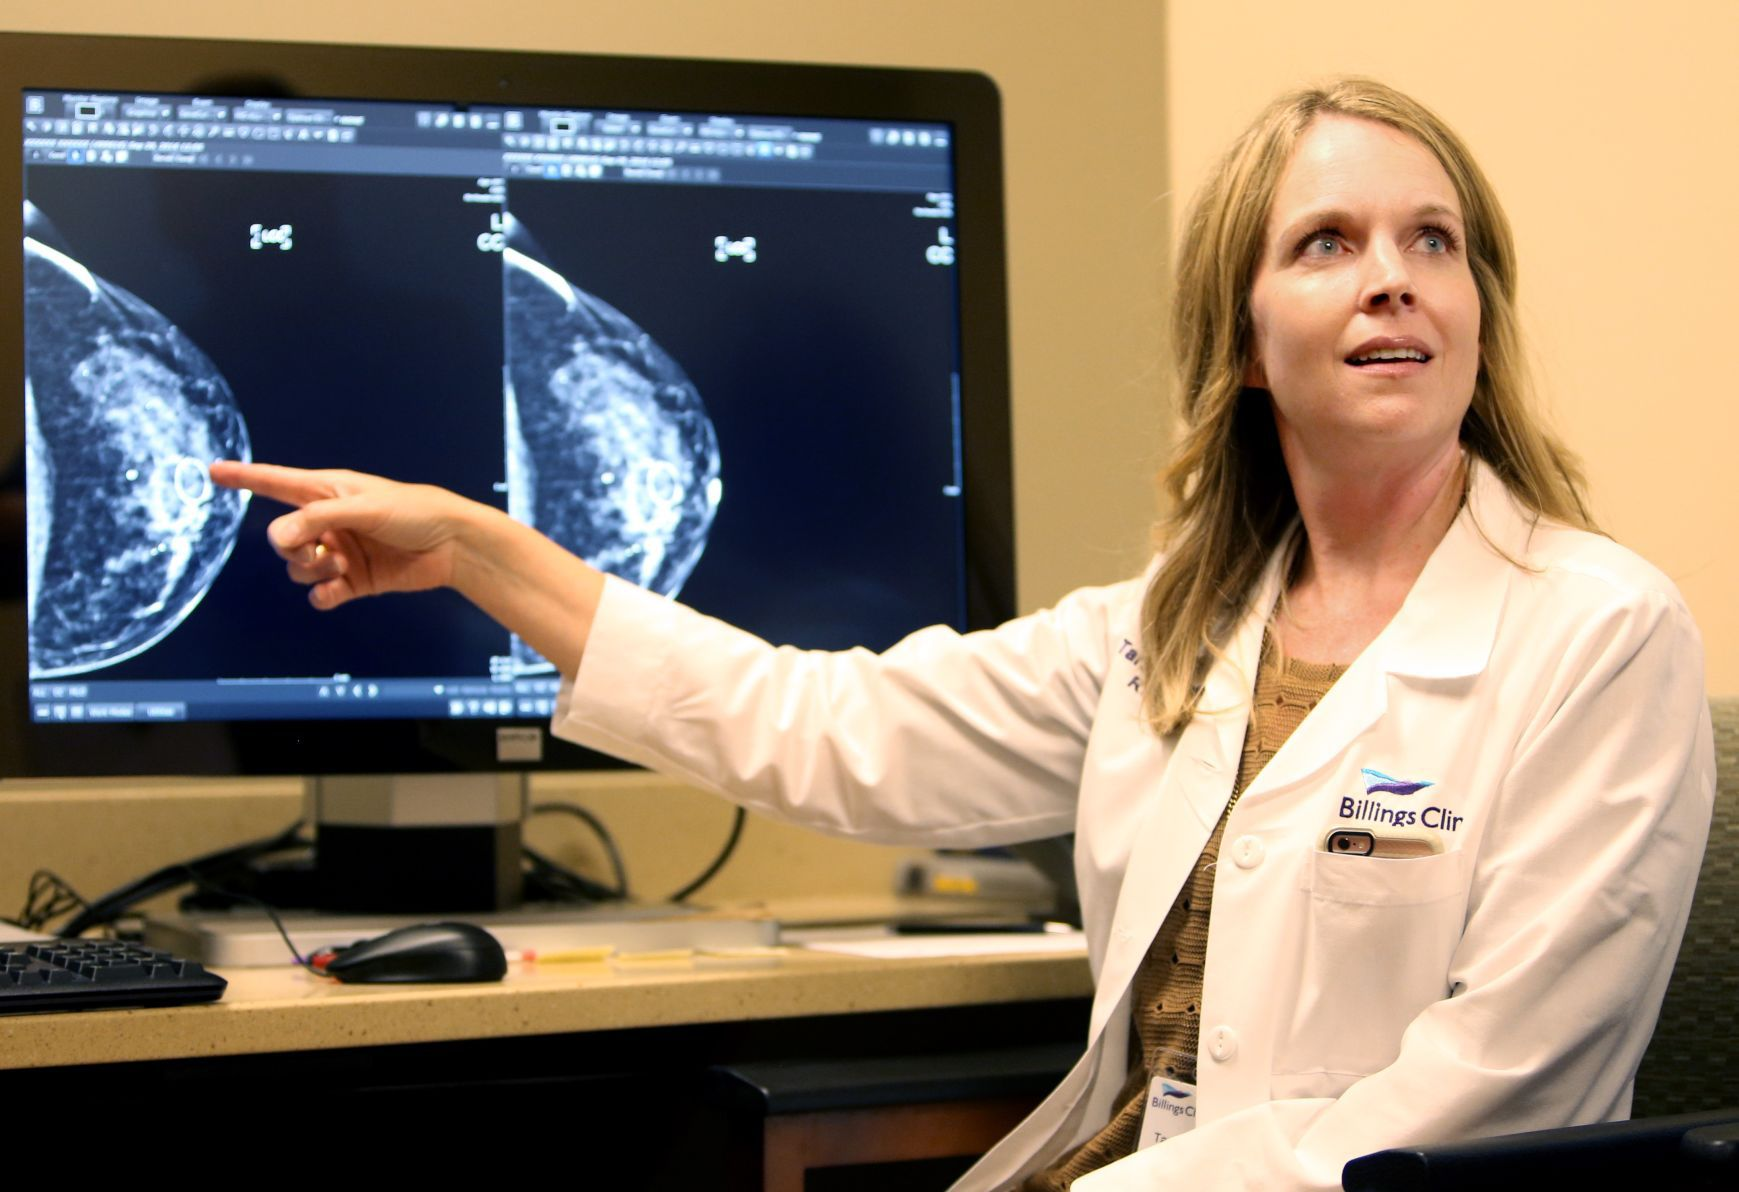 Picture perfect: Training helps mammography techs improve imaging ...